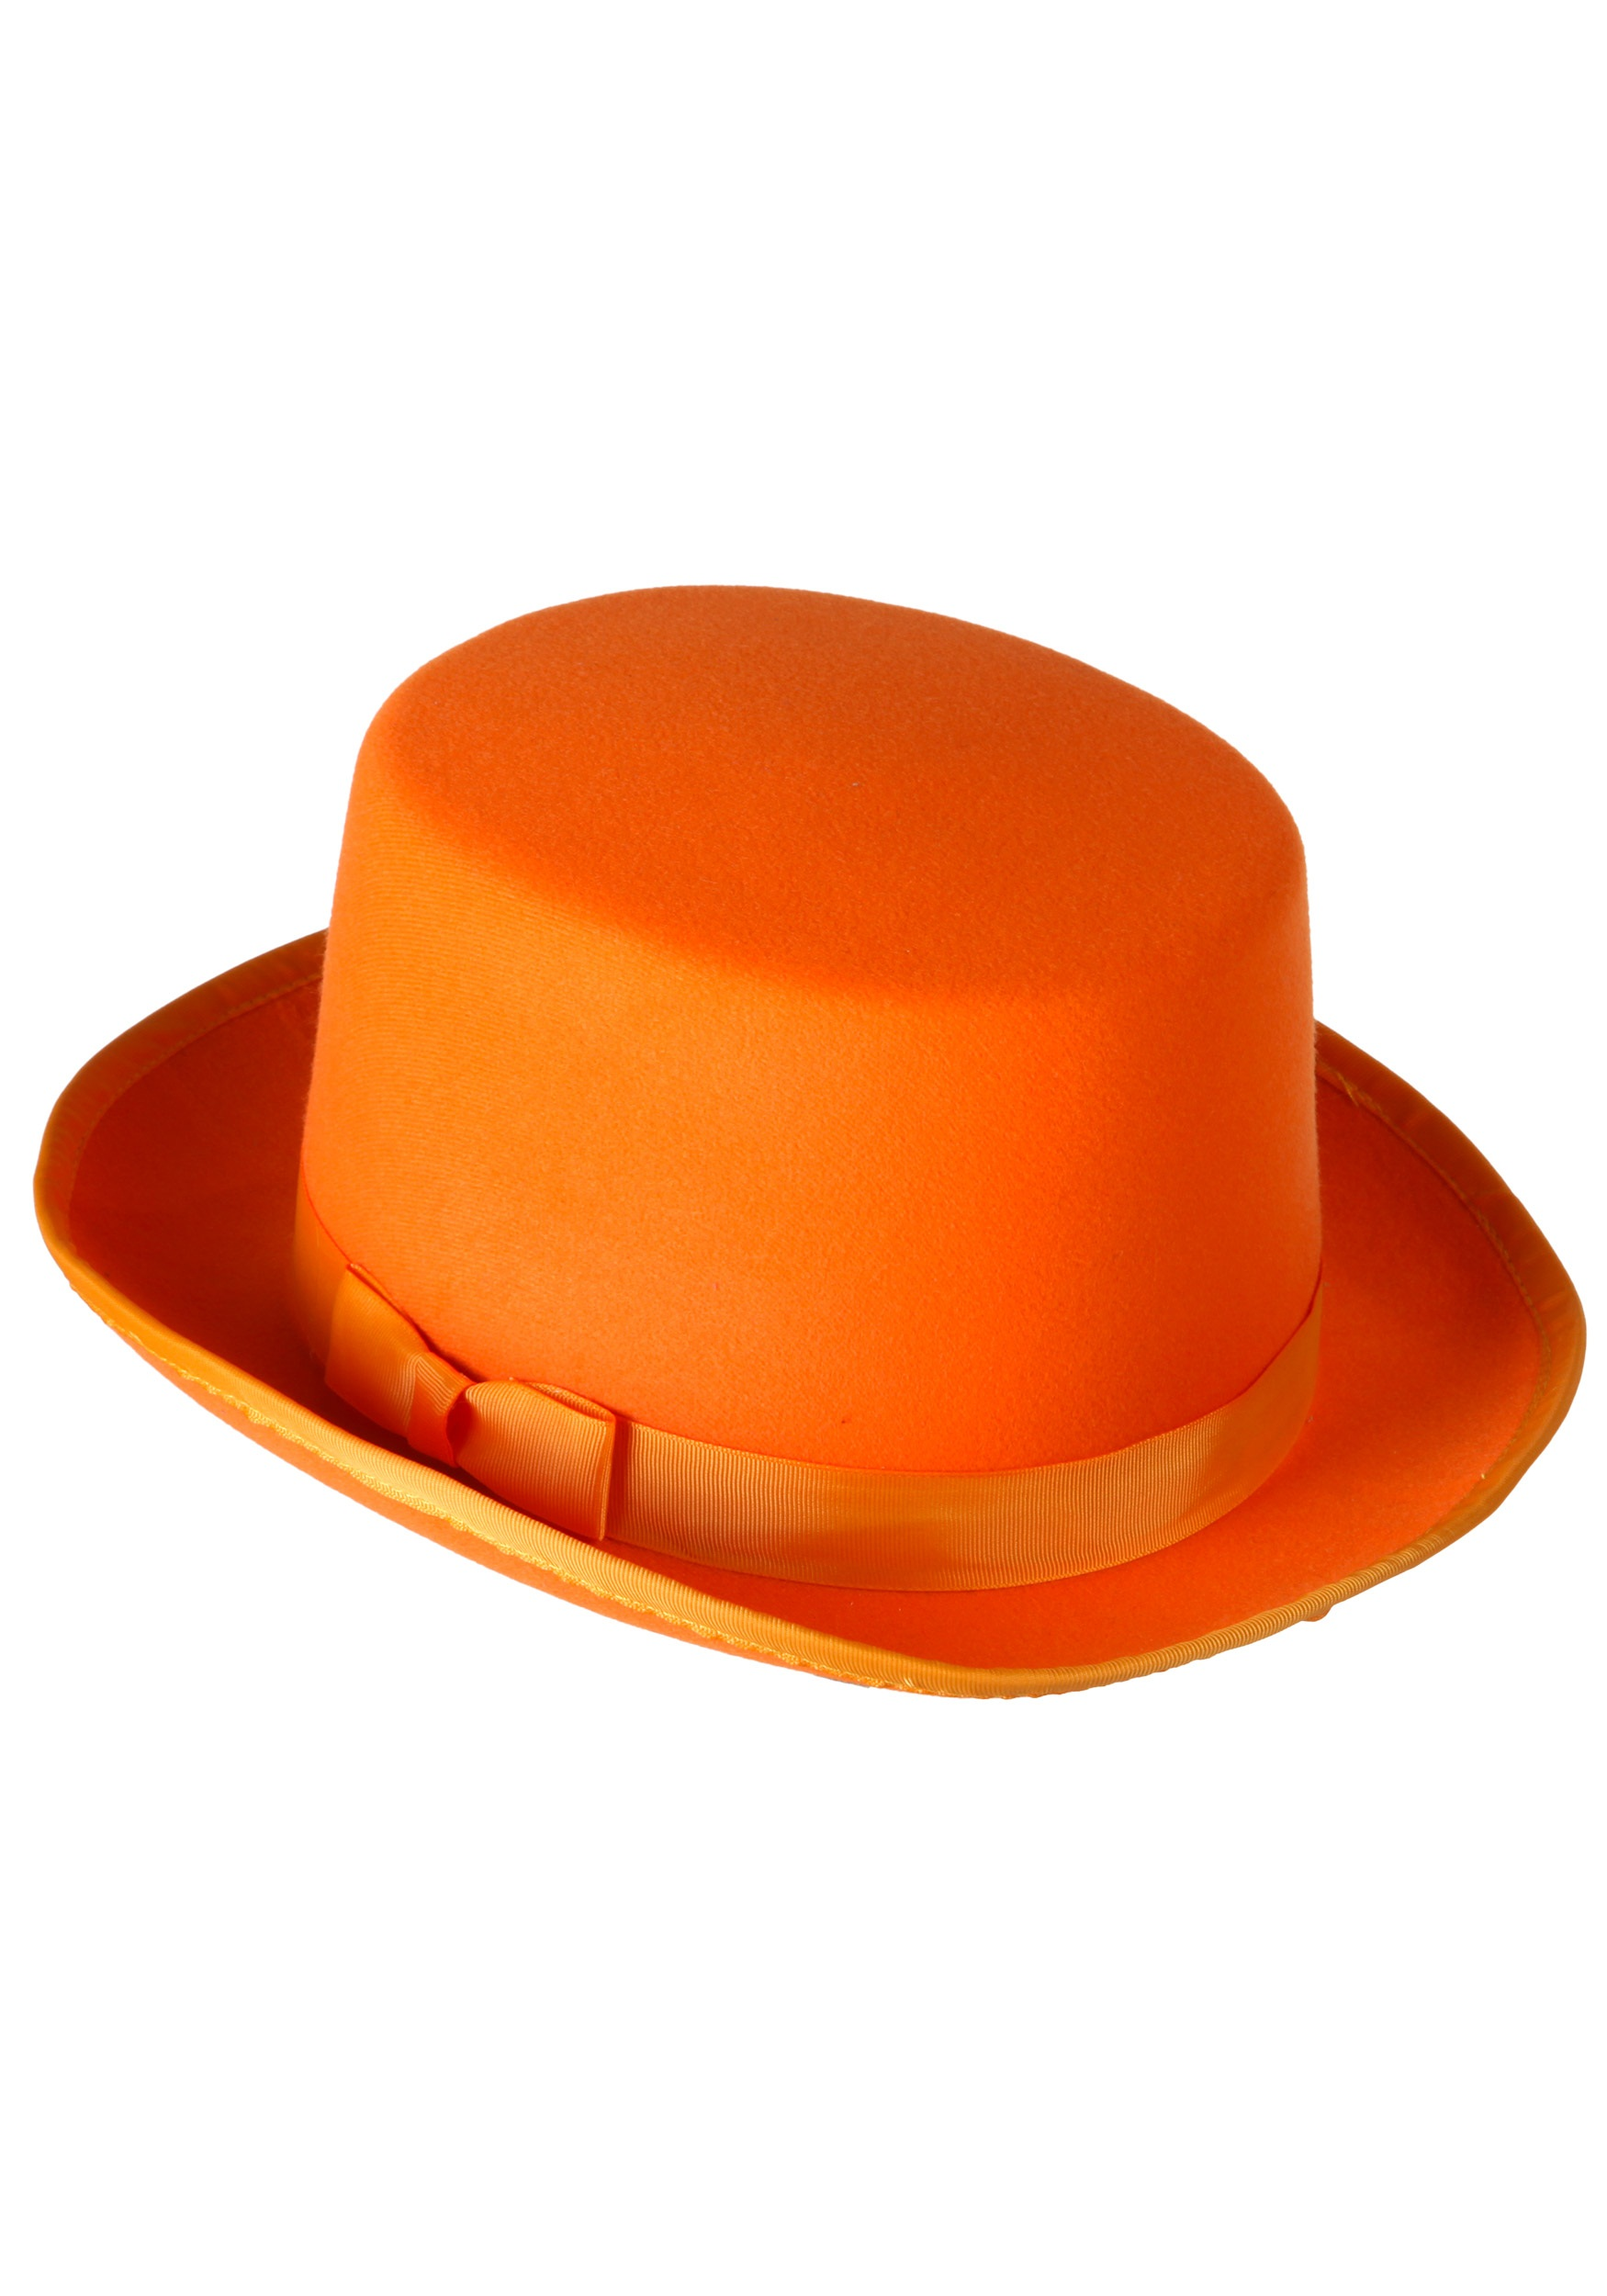 Orange_Tuxedo_Top_Hat